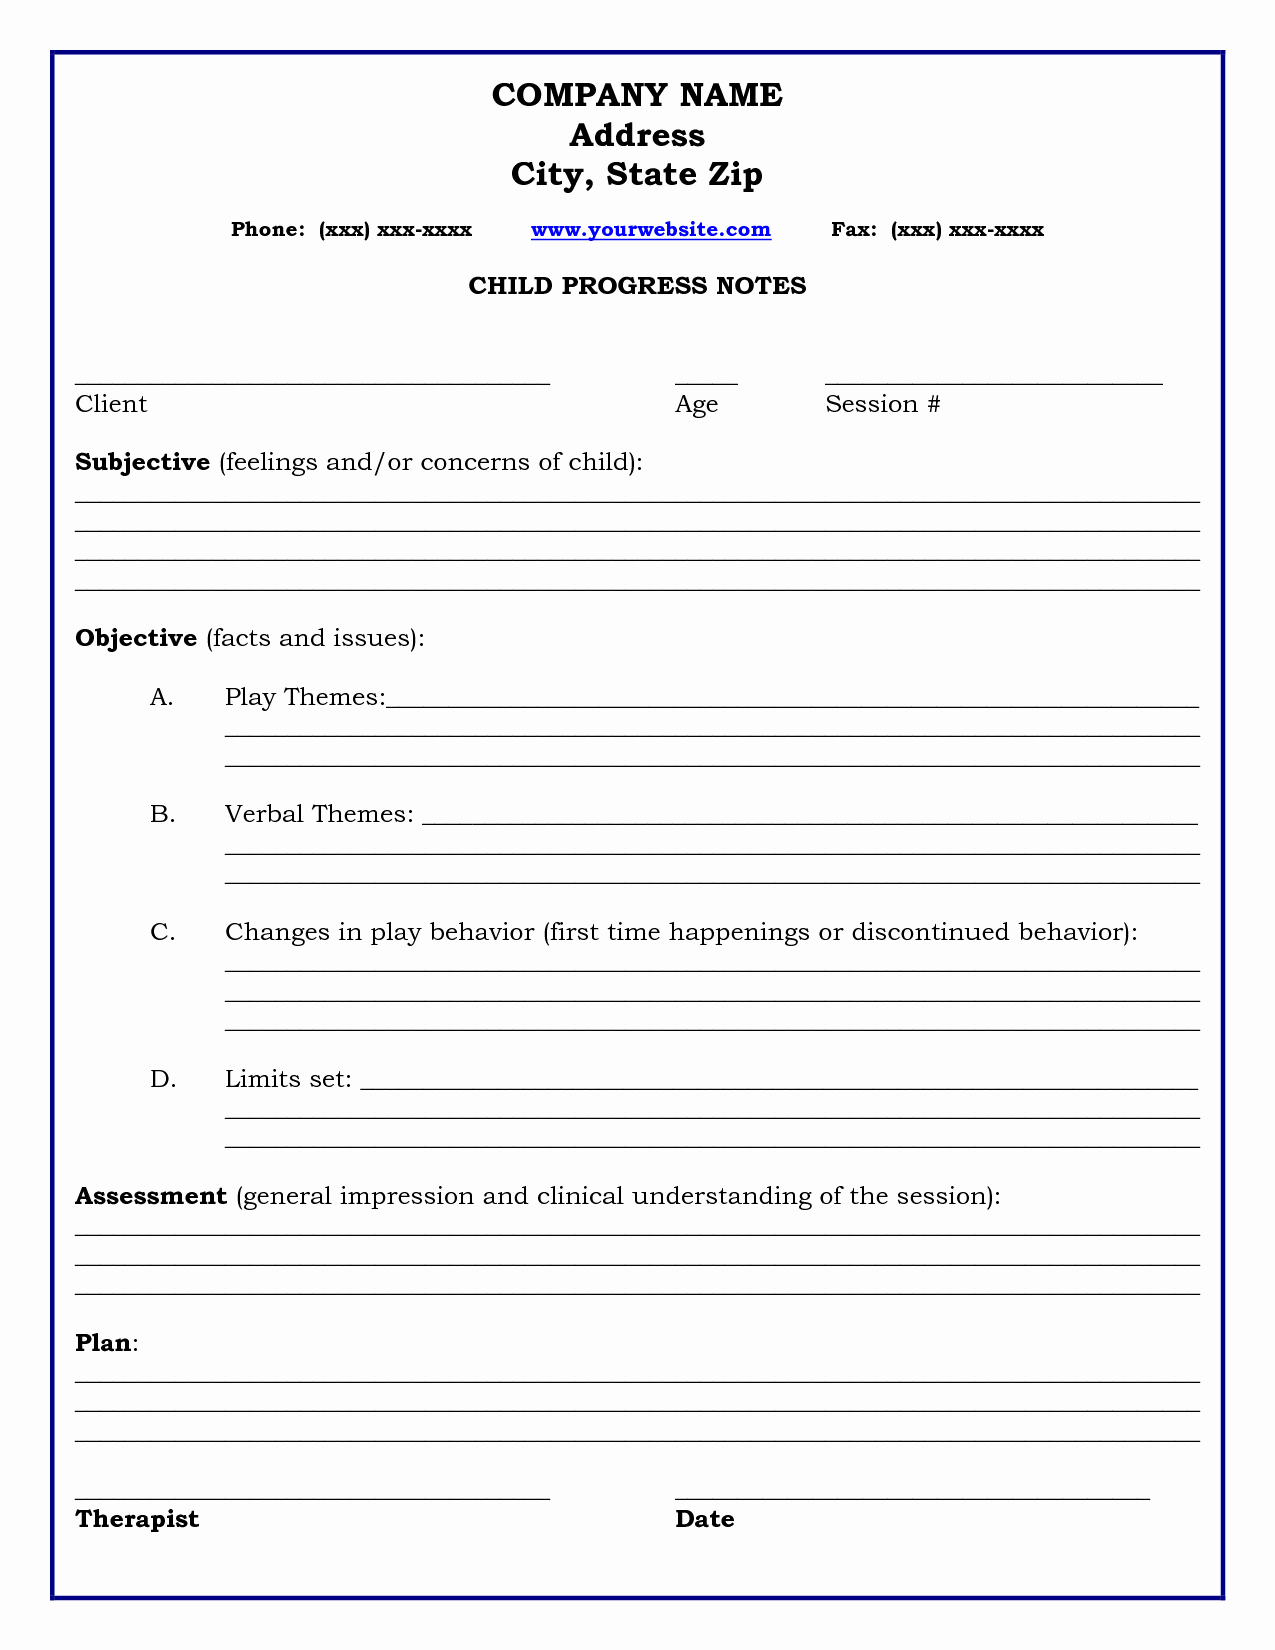 Client Notes Template Beautiful therapy Progress Note Template